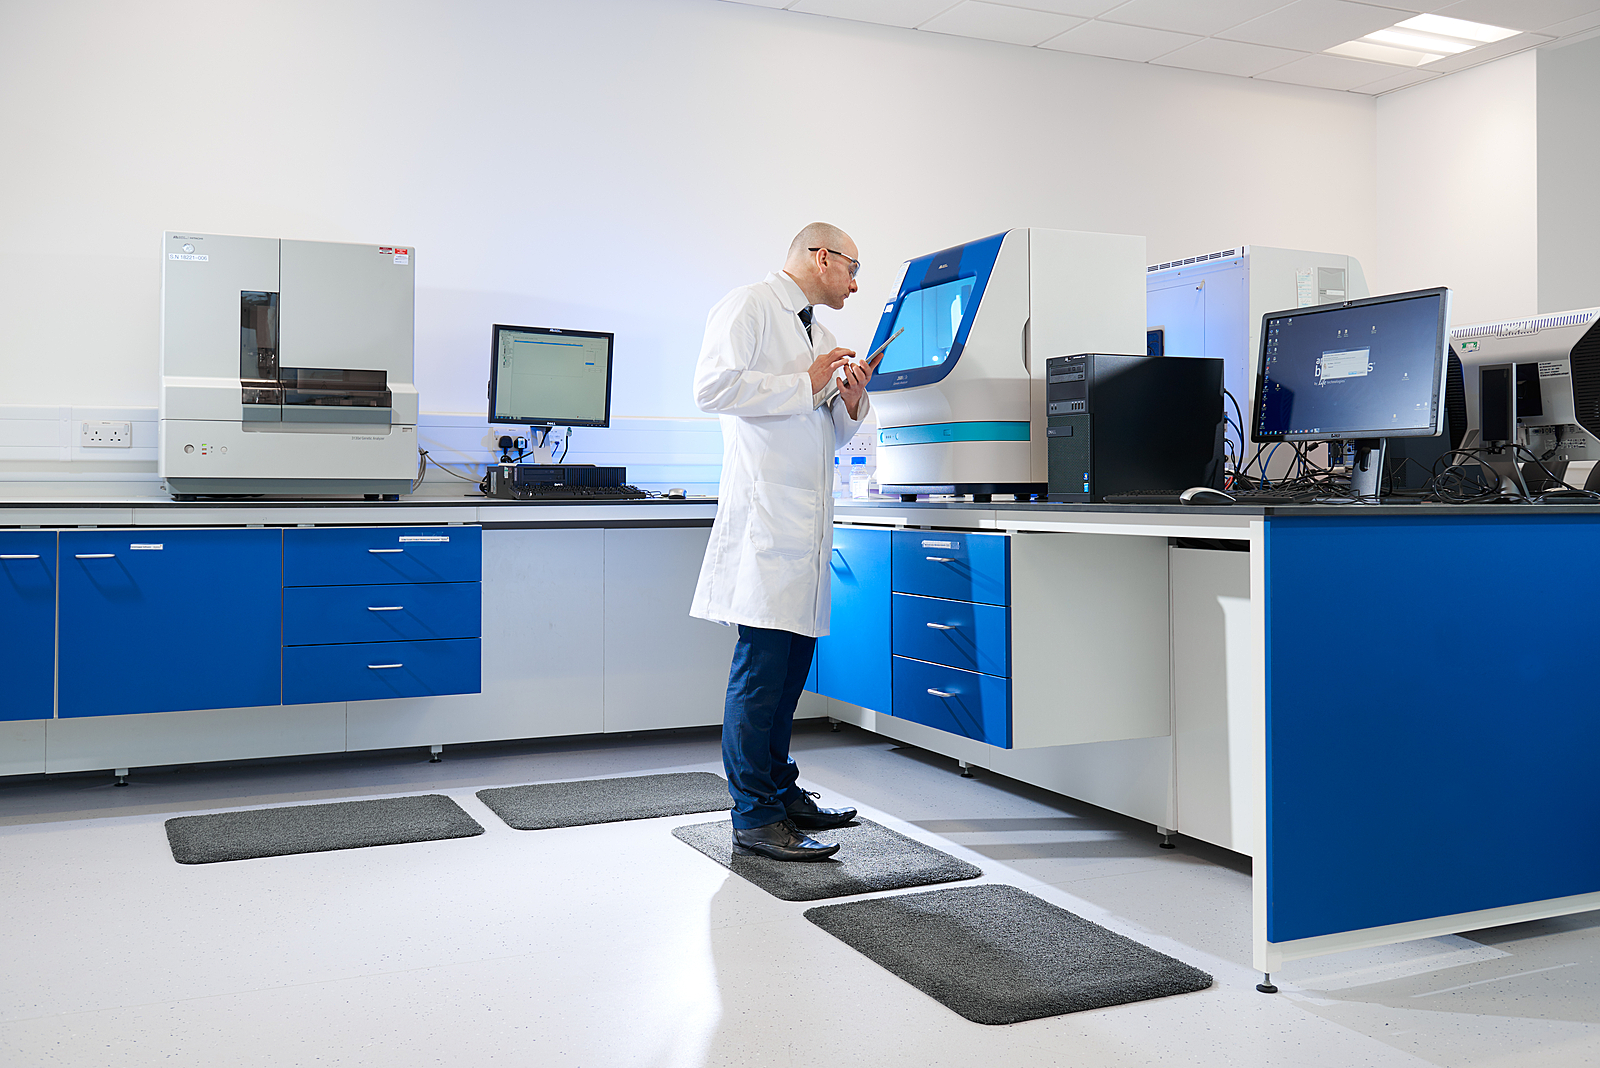 lab technician inspecting machine in lab environment